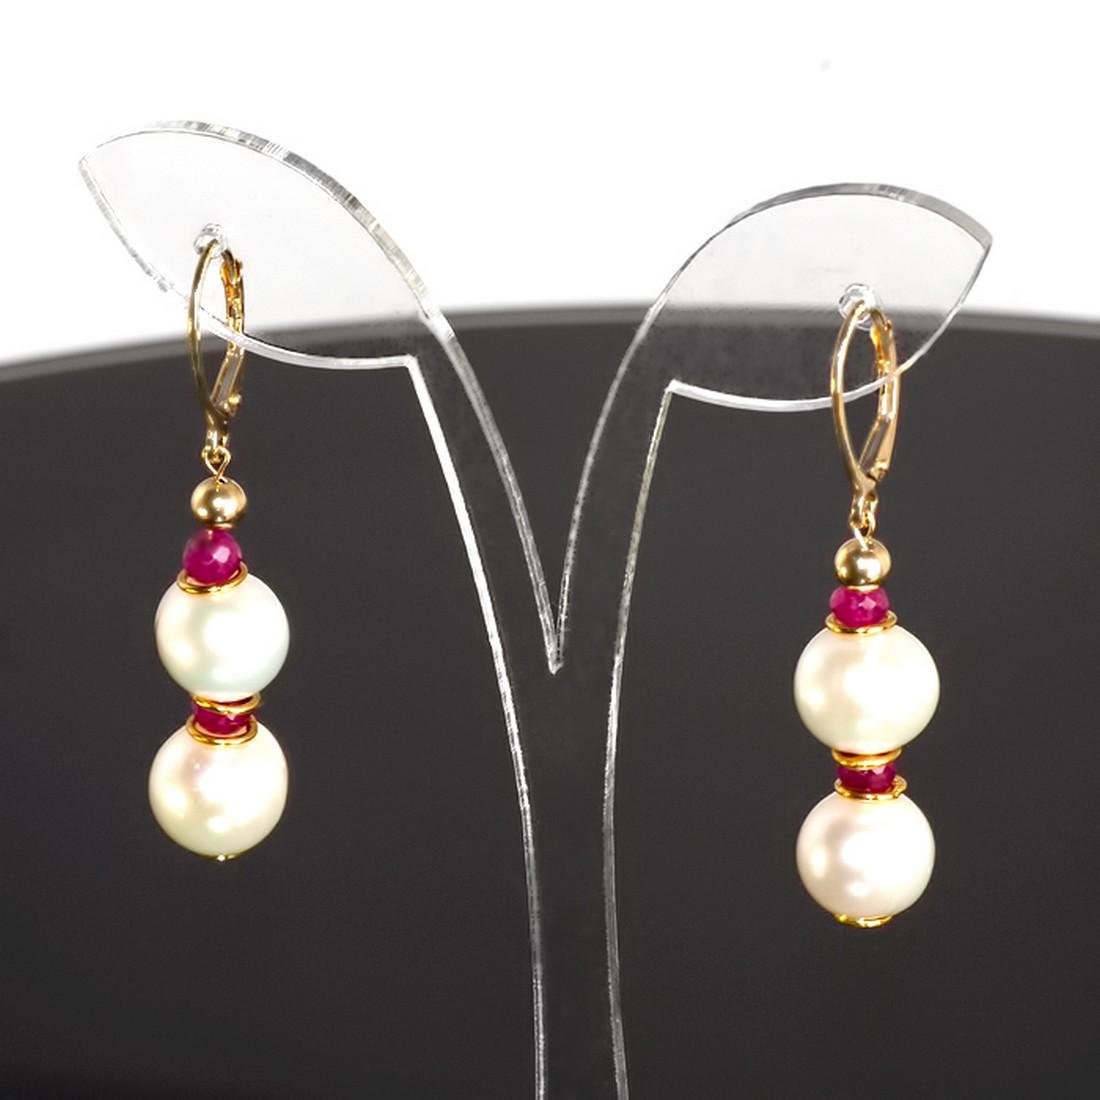 Classic Style Pearls and Rubies Earrings - 2